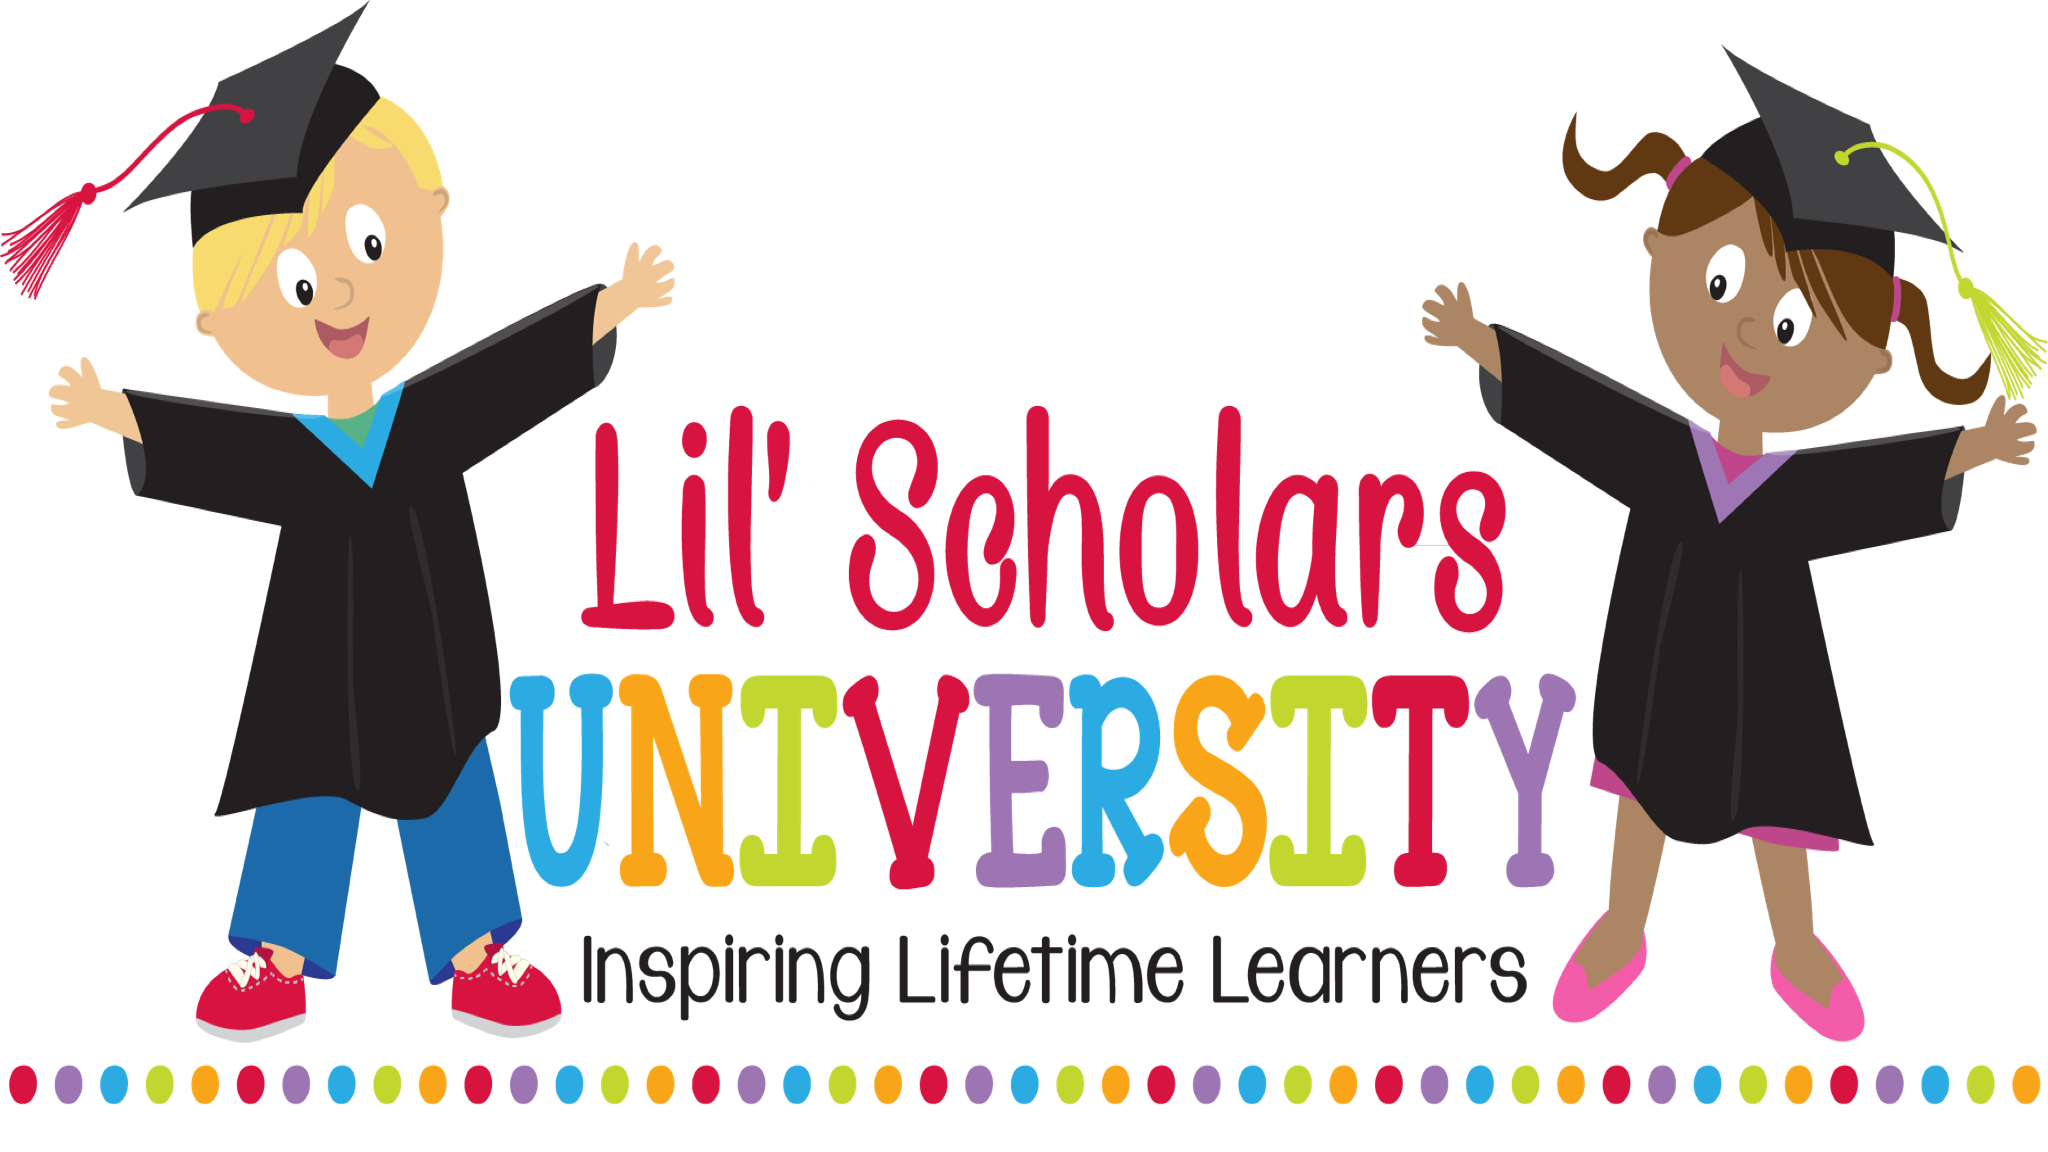 lil scholars university header 2048 x 1152